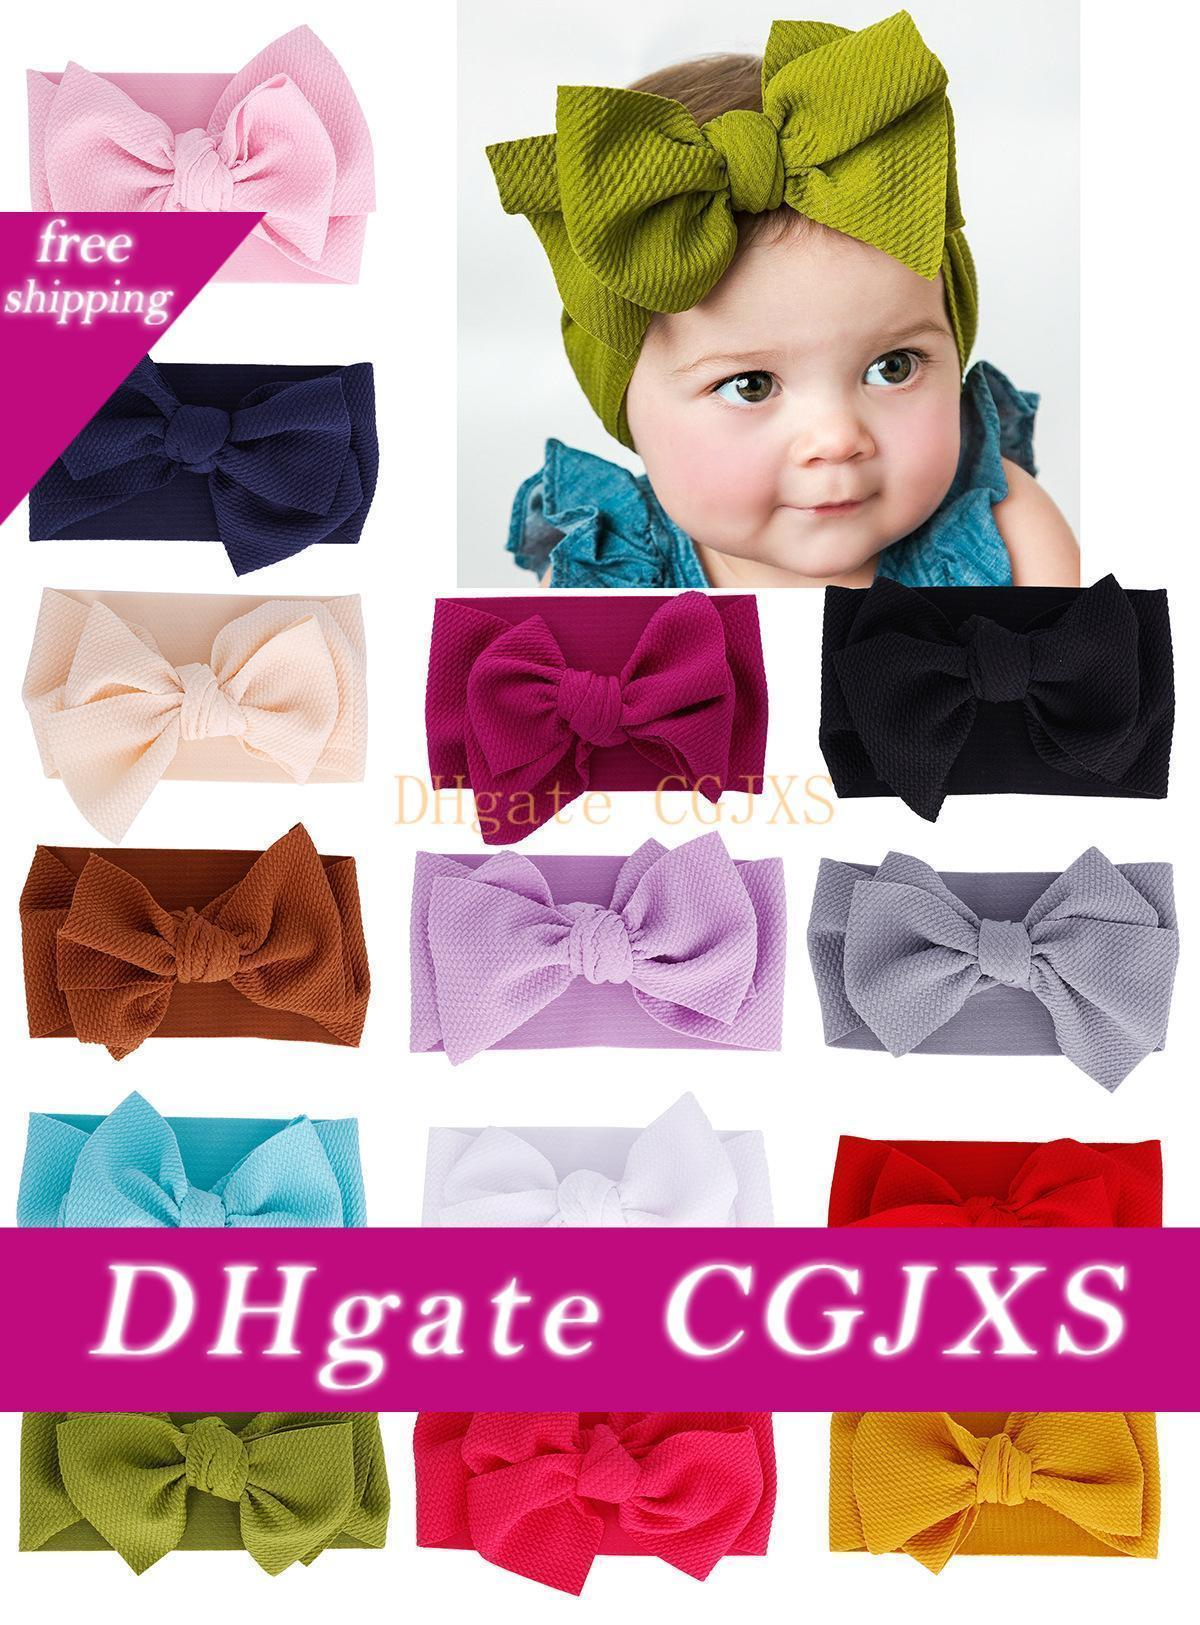 14color Fit All Baby Large Bow Girls Headband 7inch Big Bowknot Headwrap Kids Bow For Hair Cotton Wide Head Turban Infant Newborn Headbands